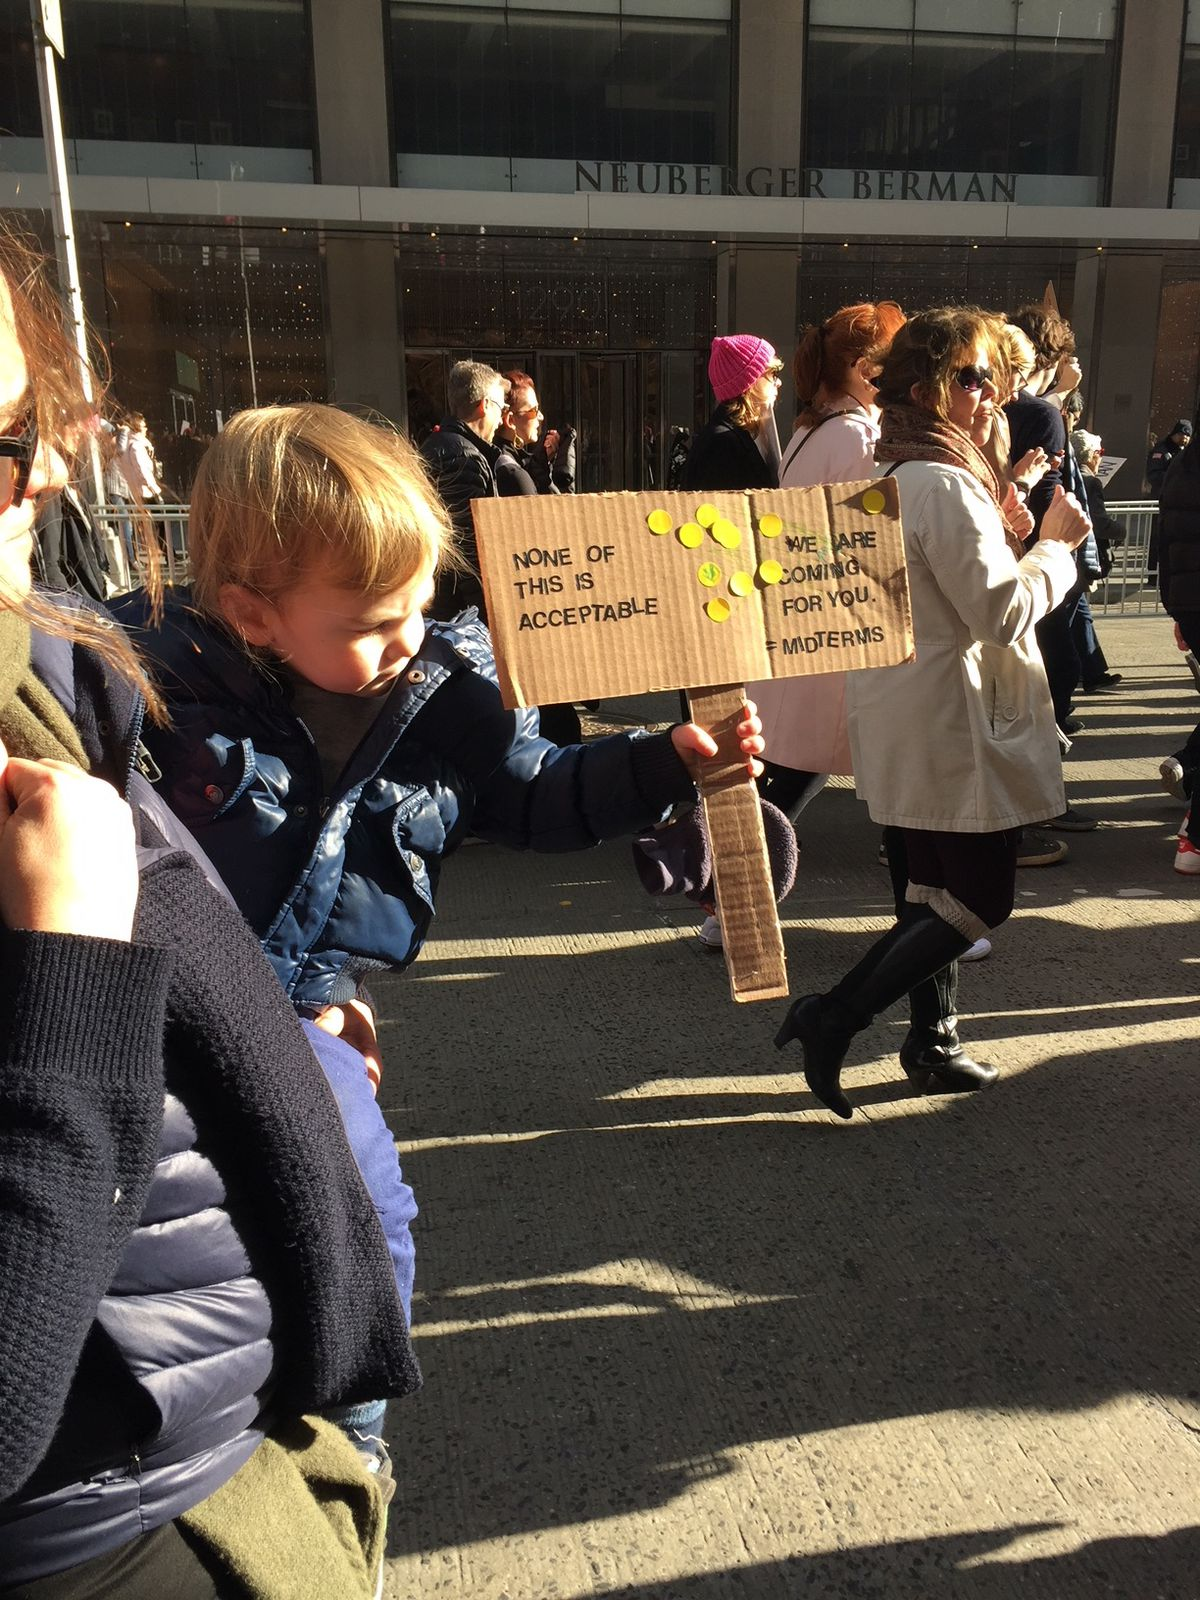 """A boy holding a sign reading """"None of this is acceptable"""" with yellow stickers"""